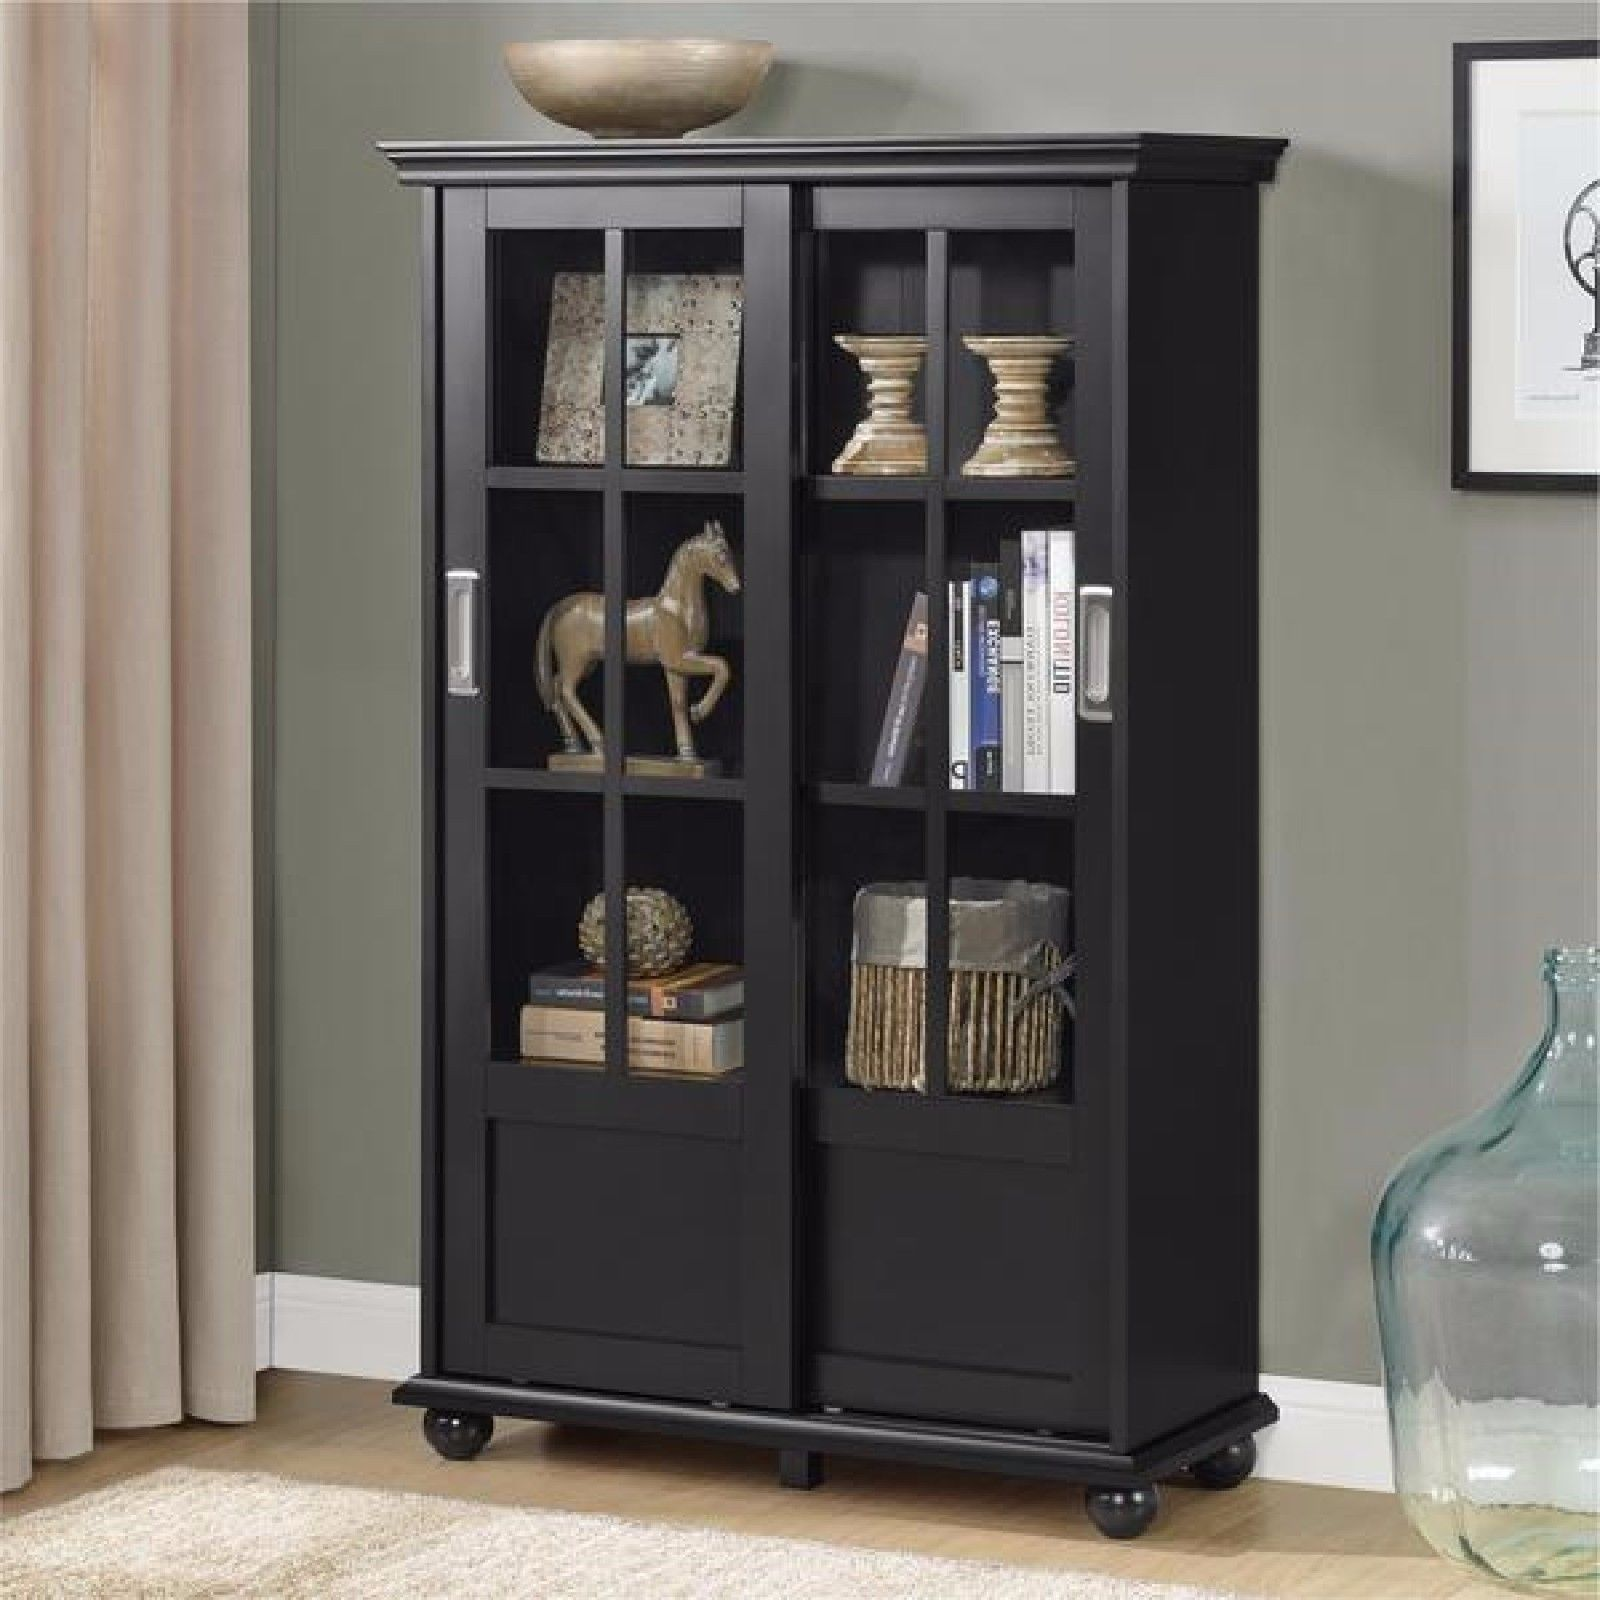 Glass Display Cabinet Bookshelf W Sliding Glass Doors Black